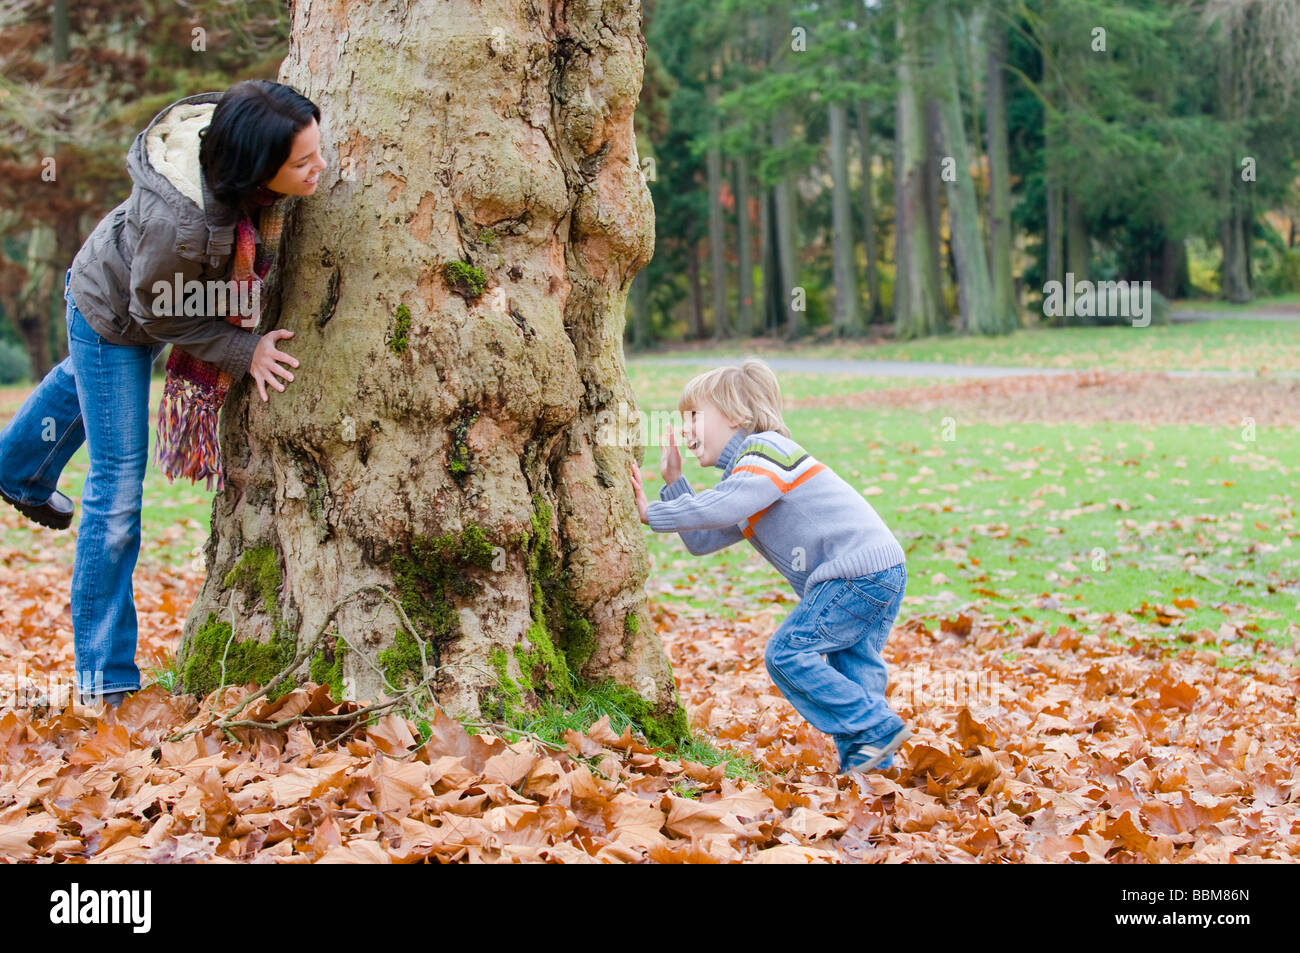 Young woman and young boy at opposite sides of large tree, Vancouver, British Columbia - Stock Image